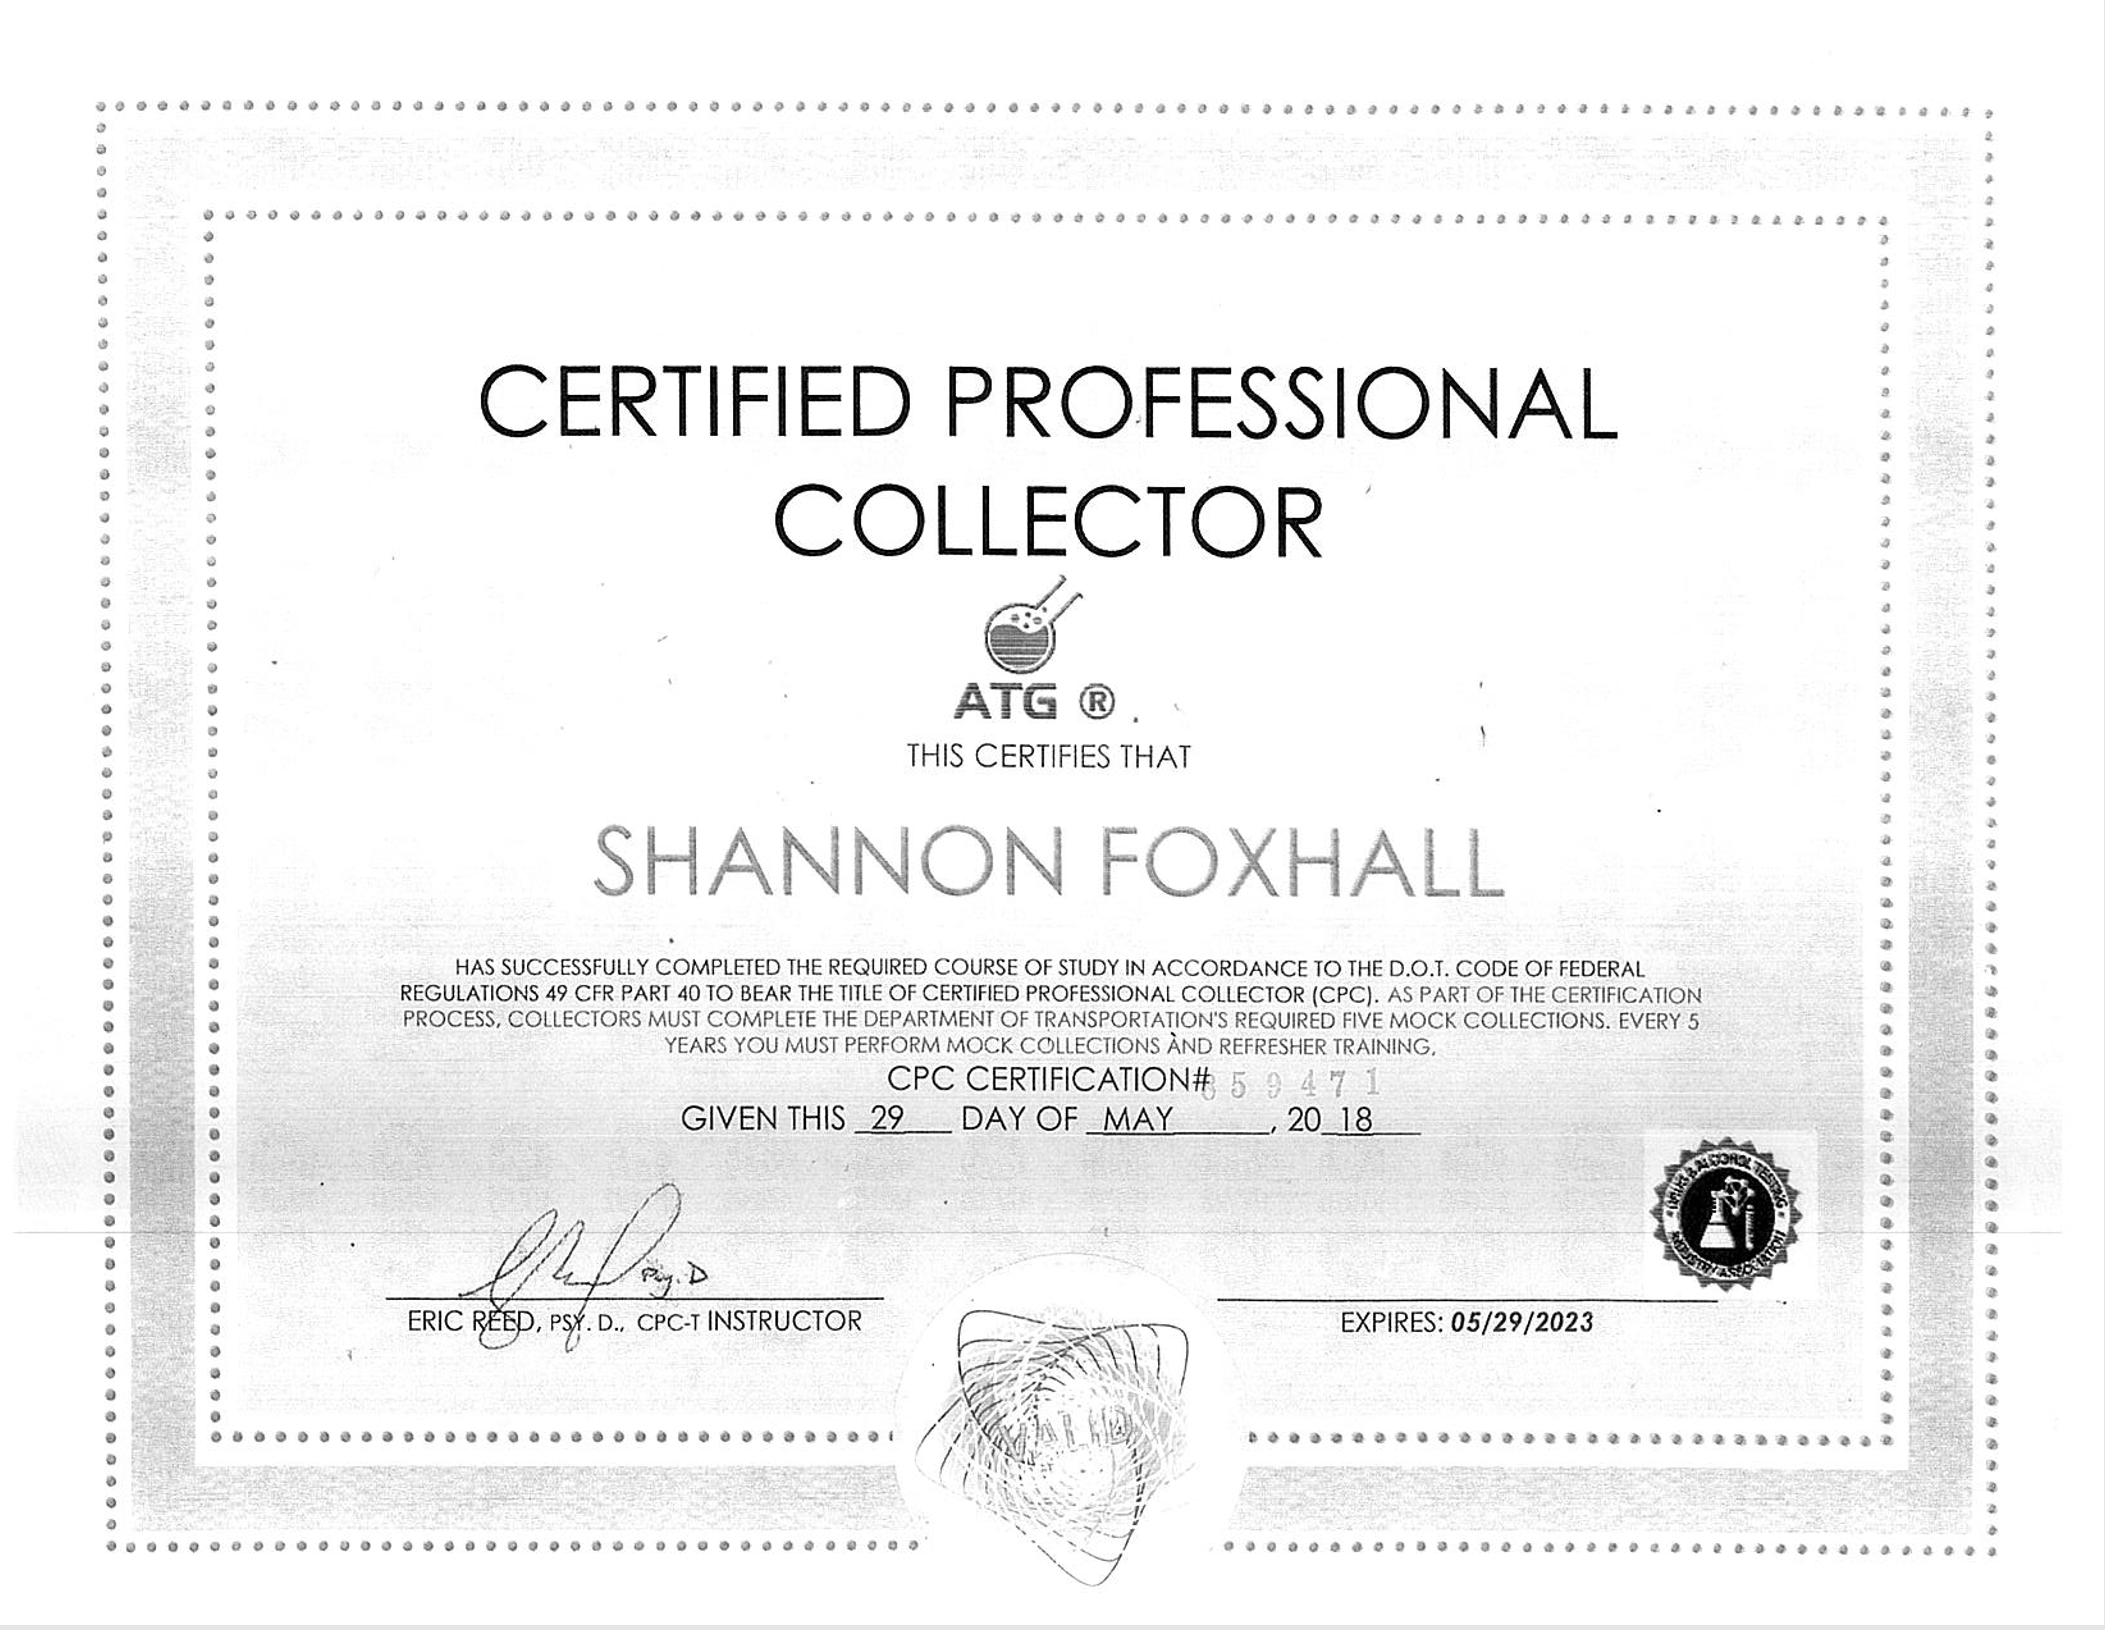 Shannon Foxhall - Certified Professional Collector | Bradley Screening